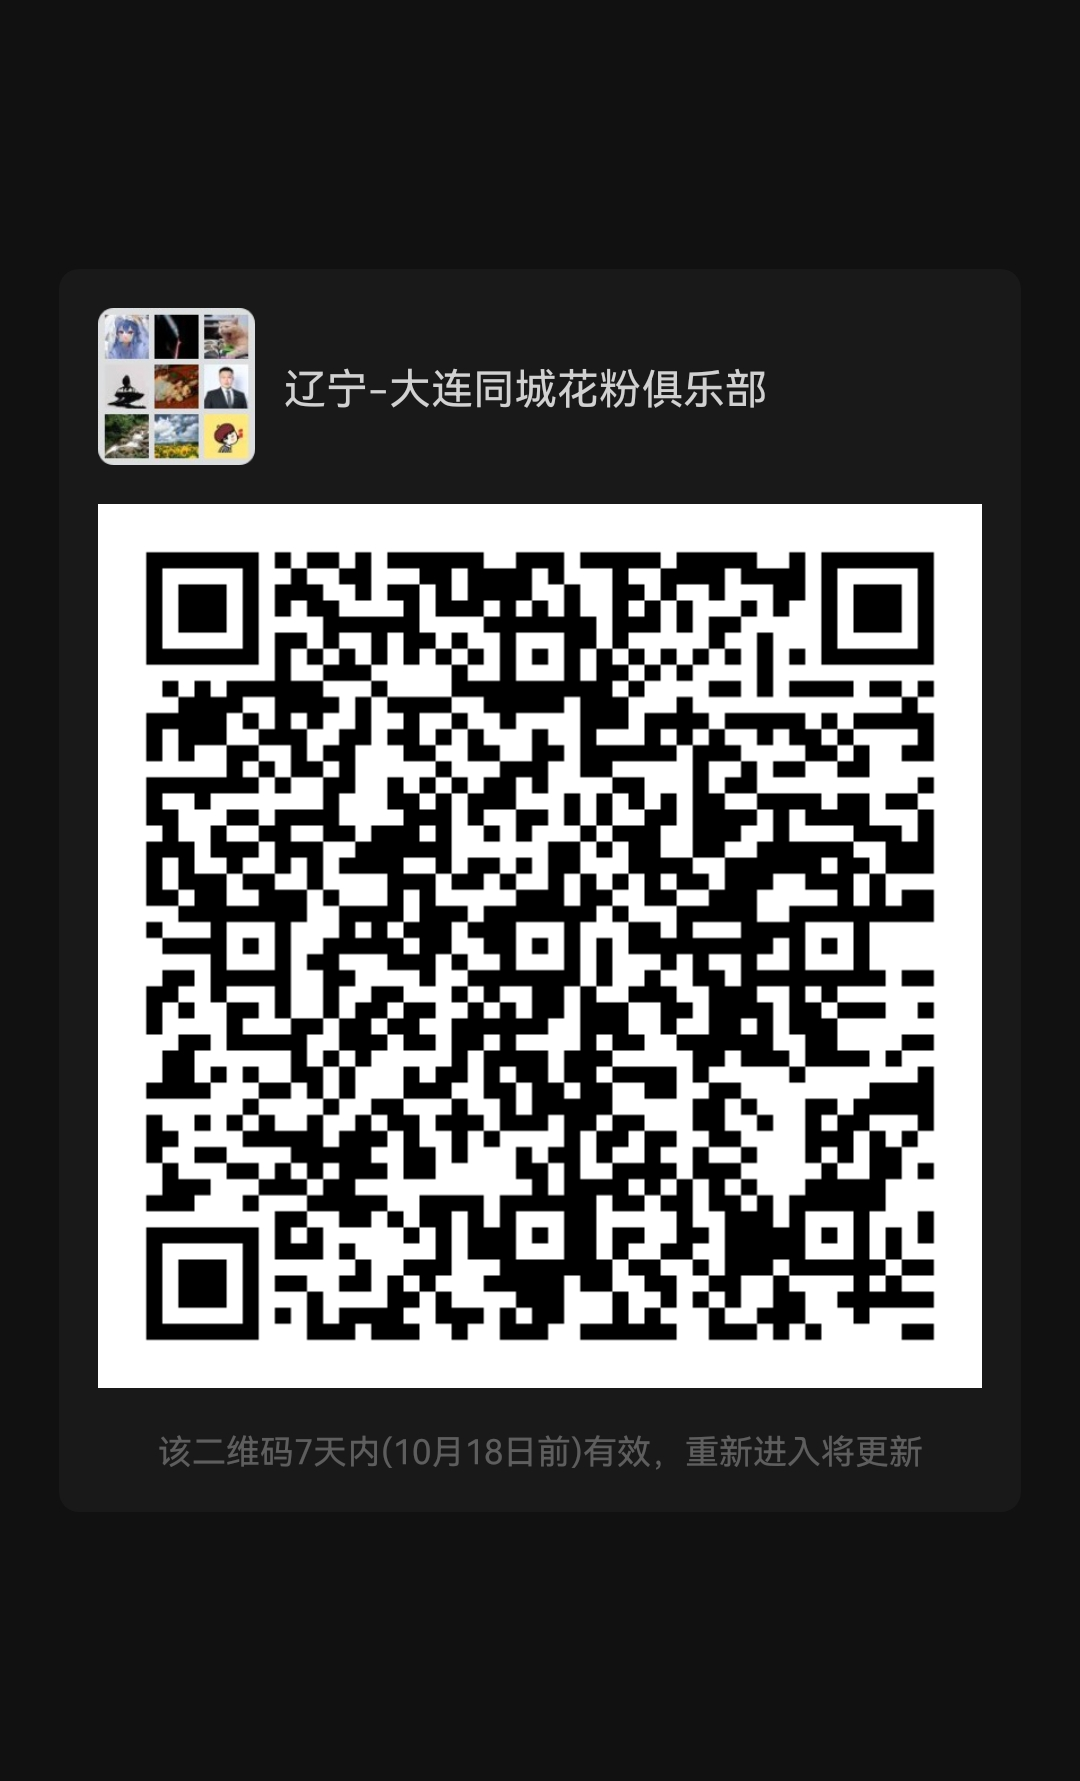 mmqrcode1633955790934.png